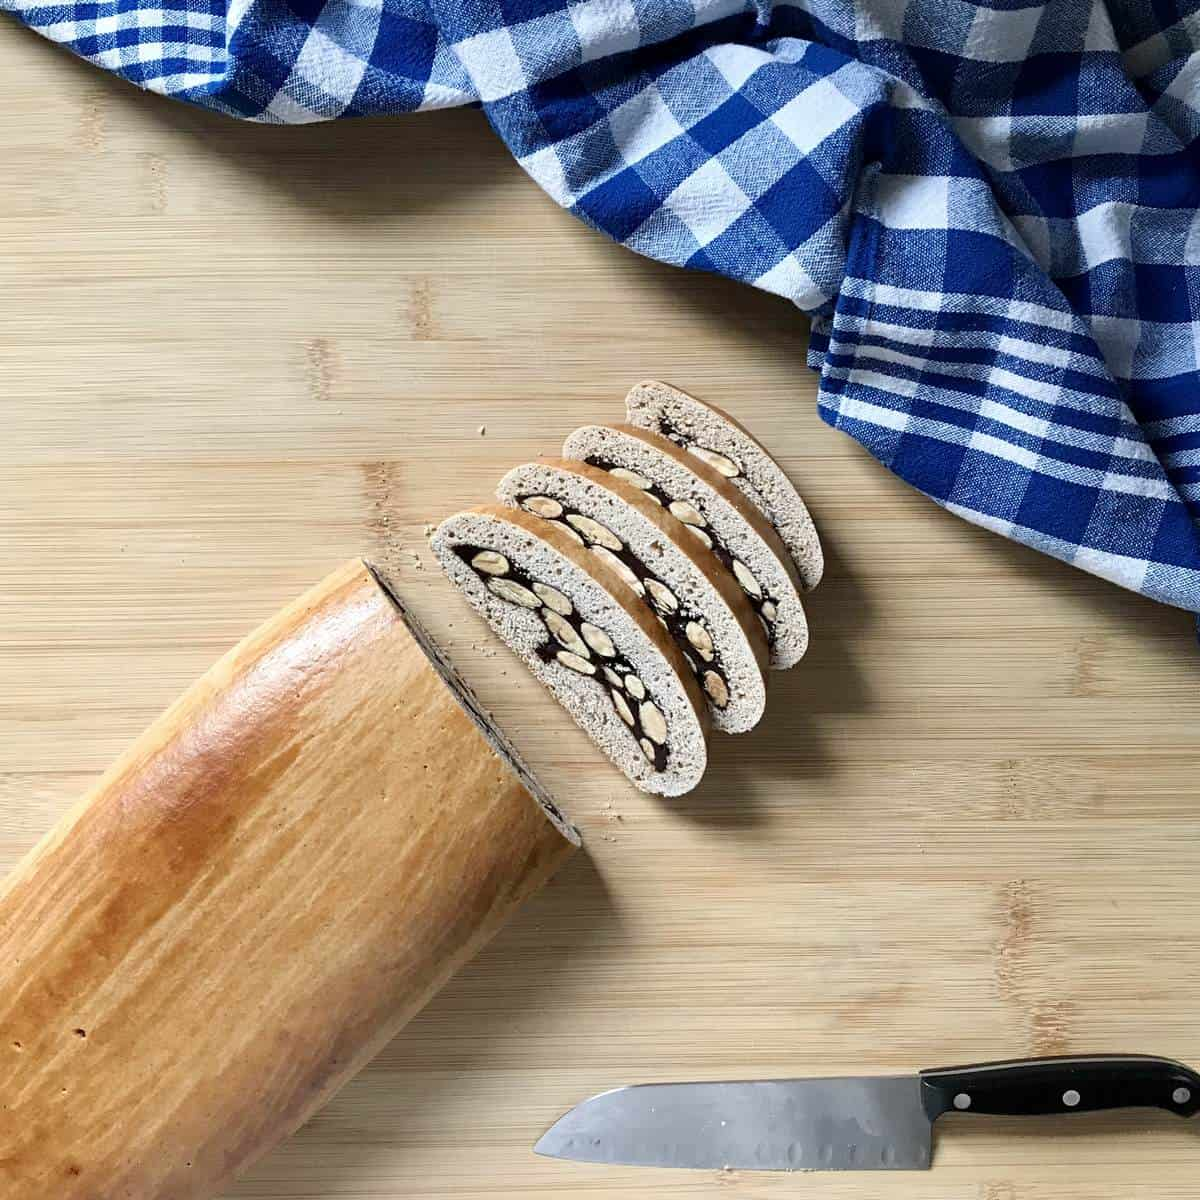 Sliced biscotti cookies on a wooden board.